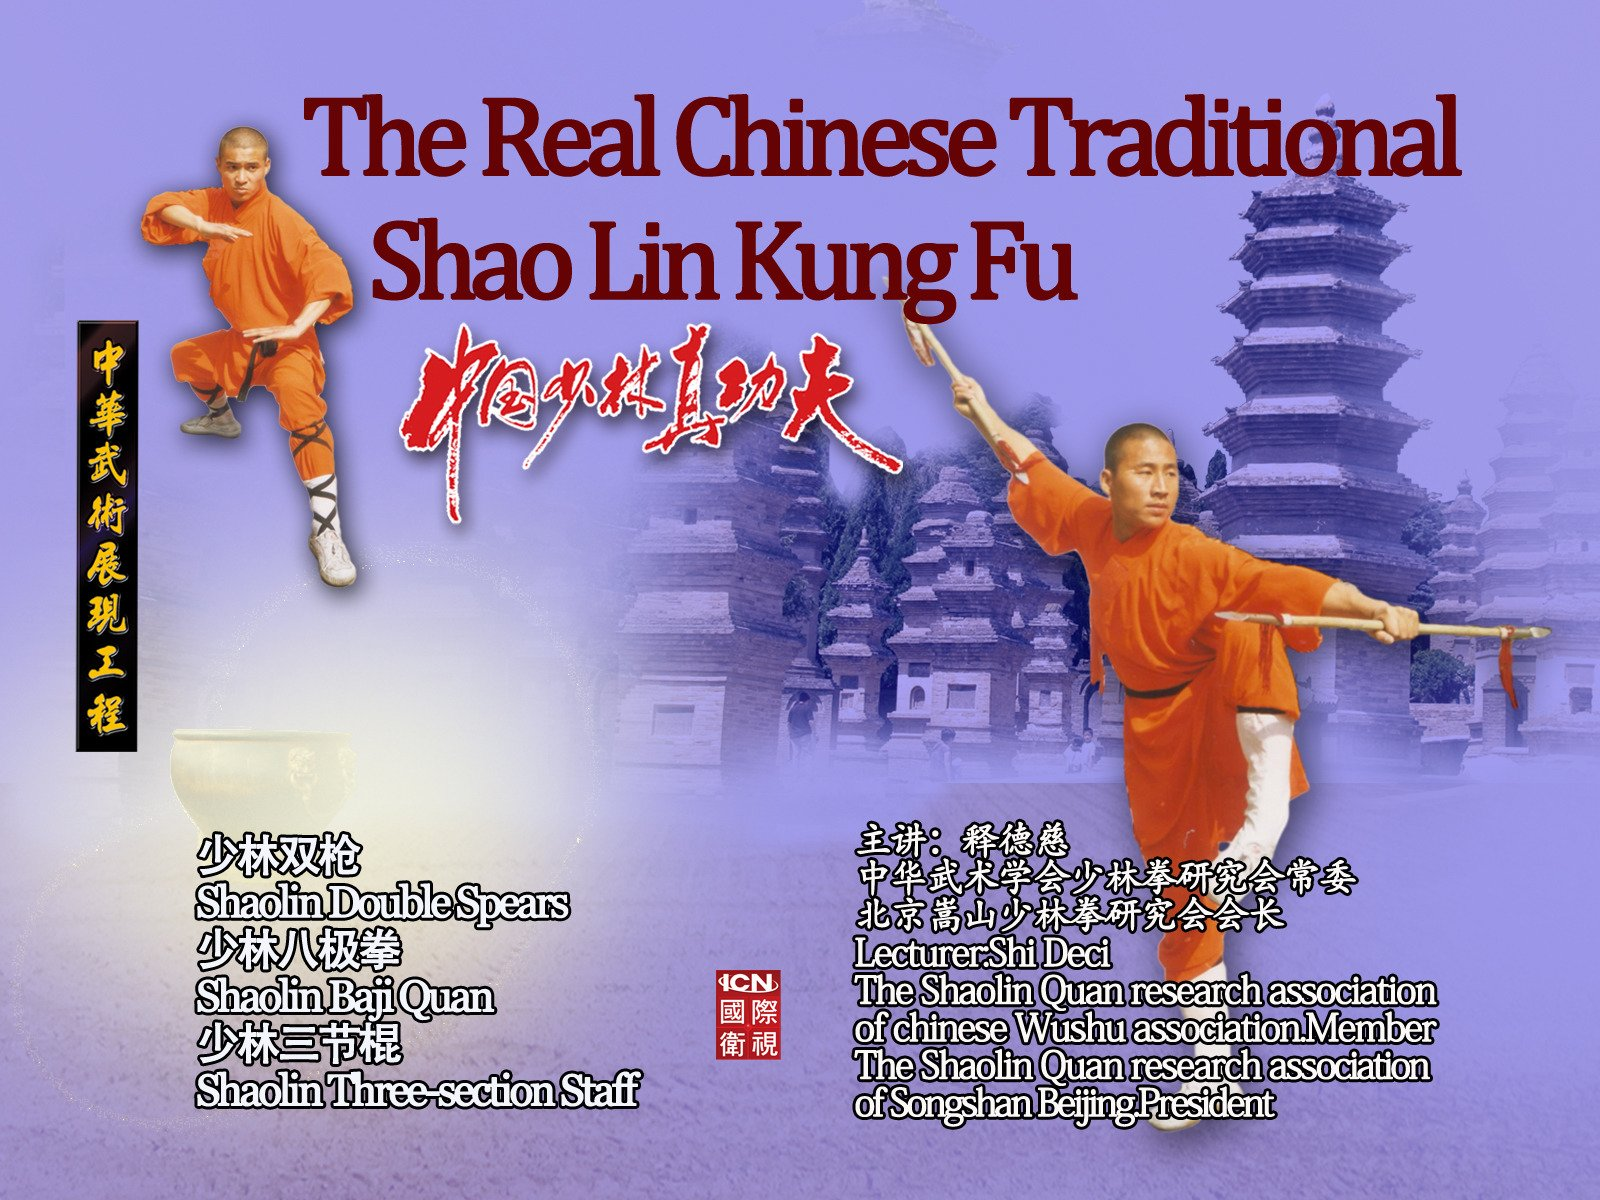 The Real Chinese Traditional Shao Lin Kung Fu - Season 11